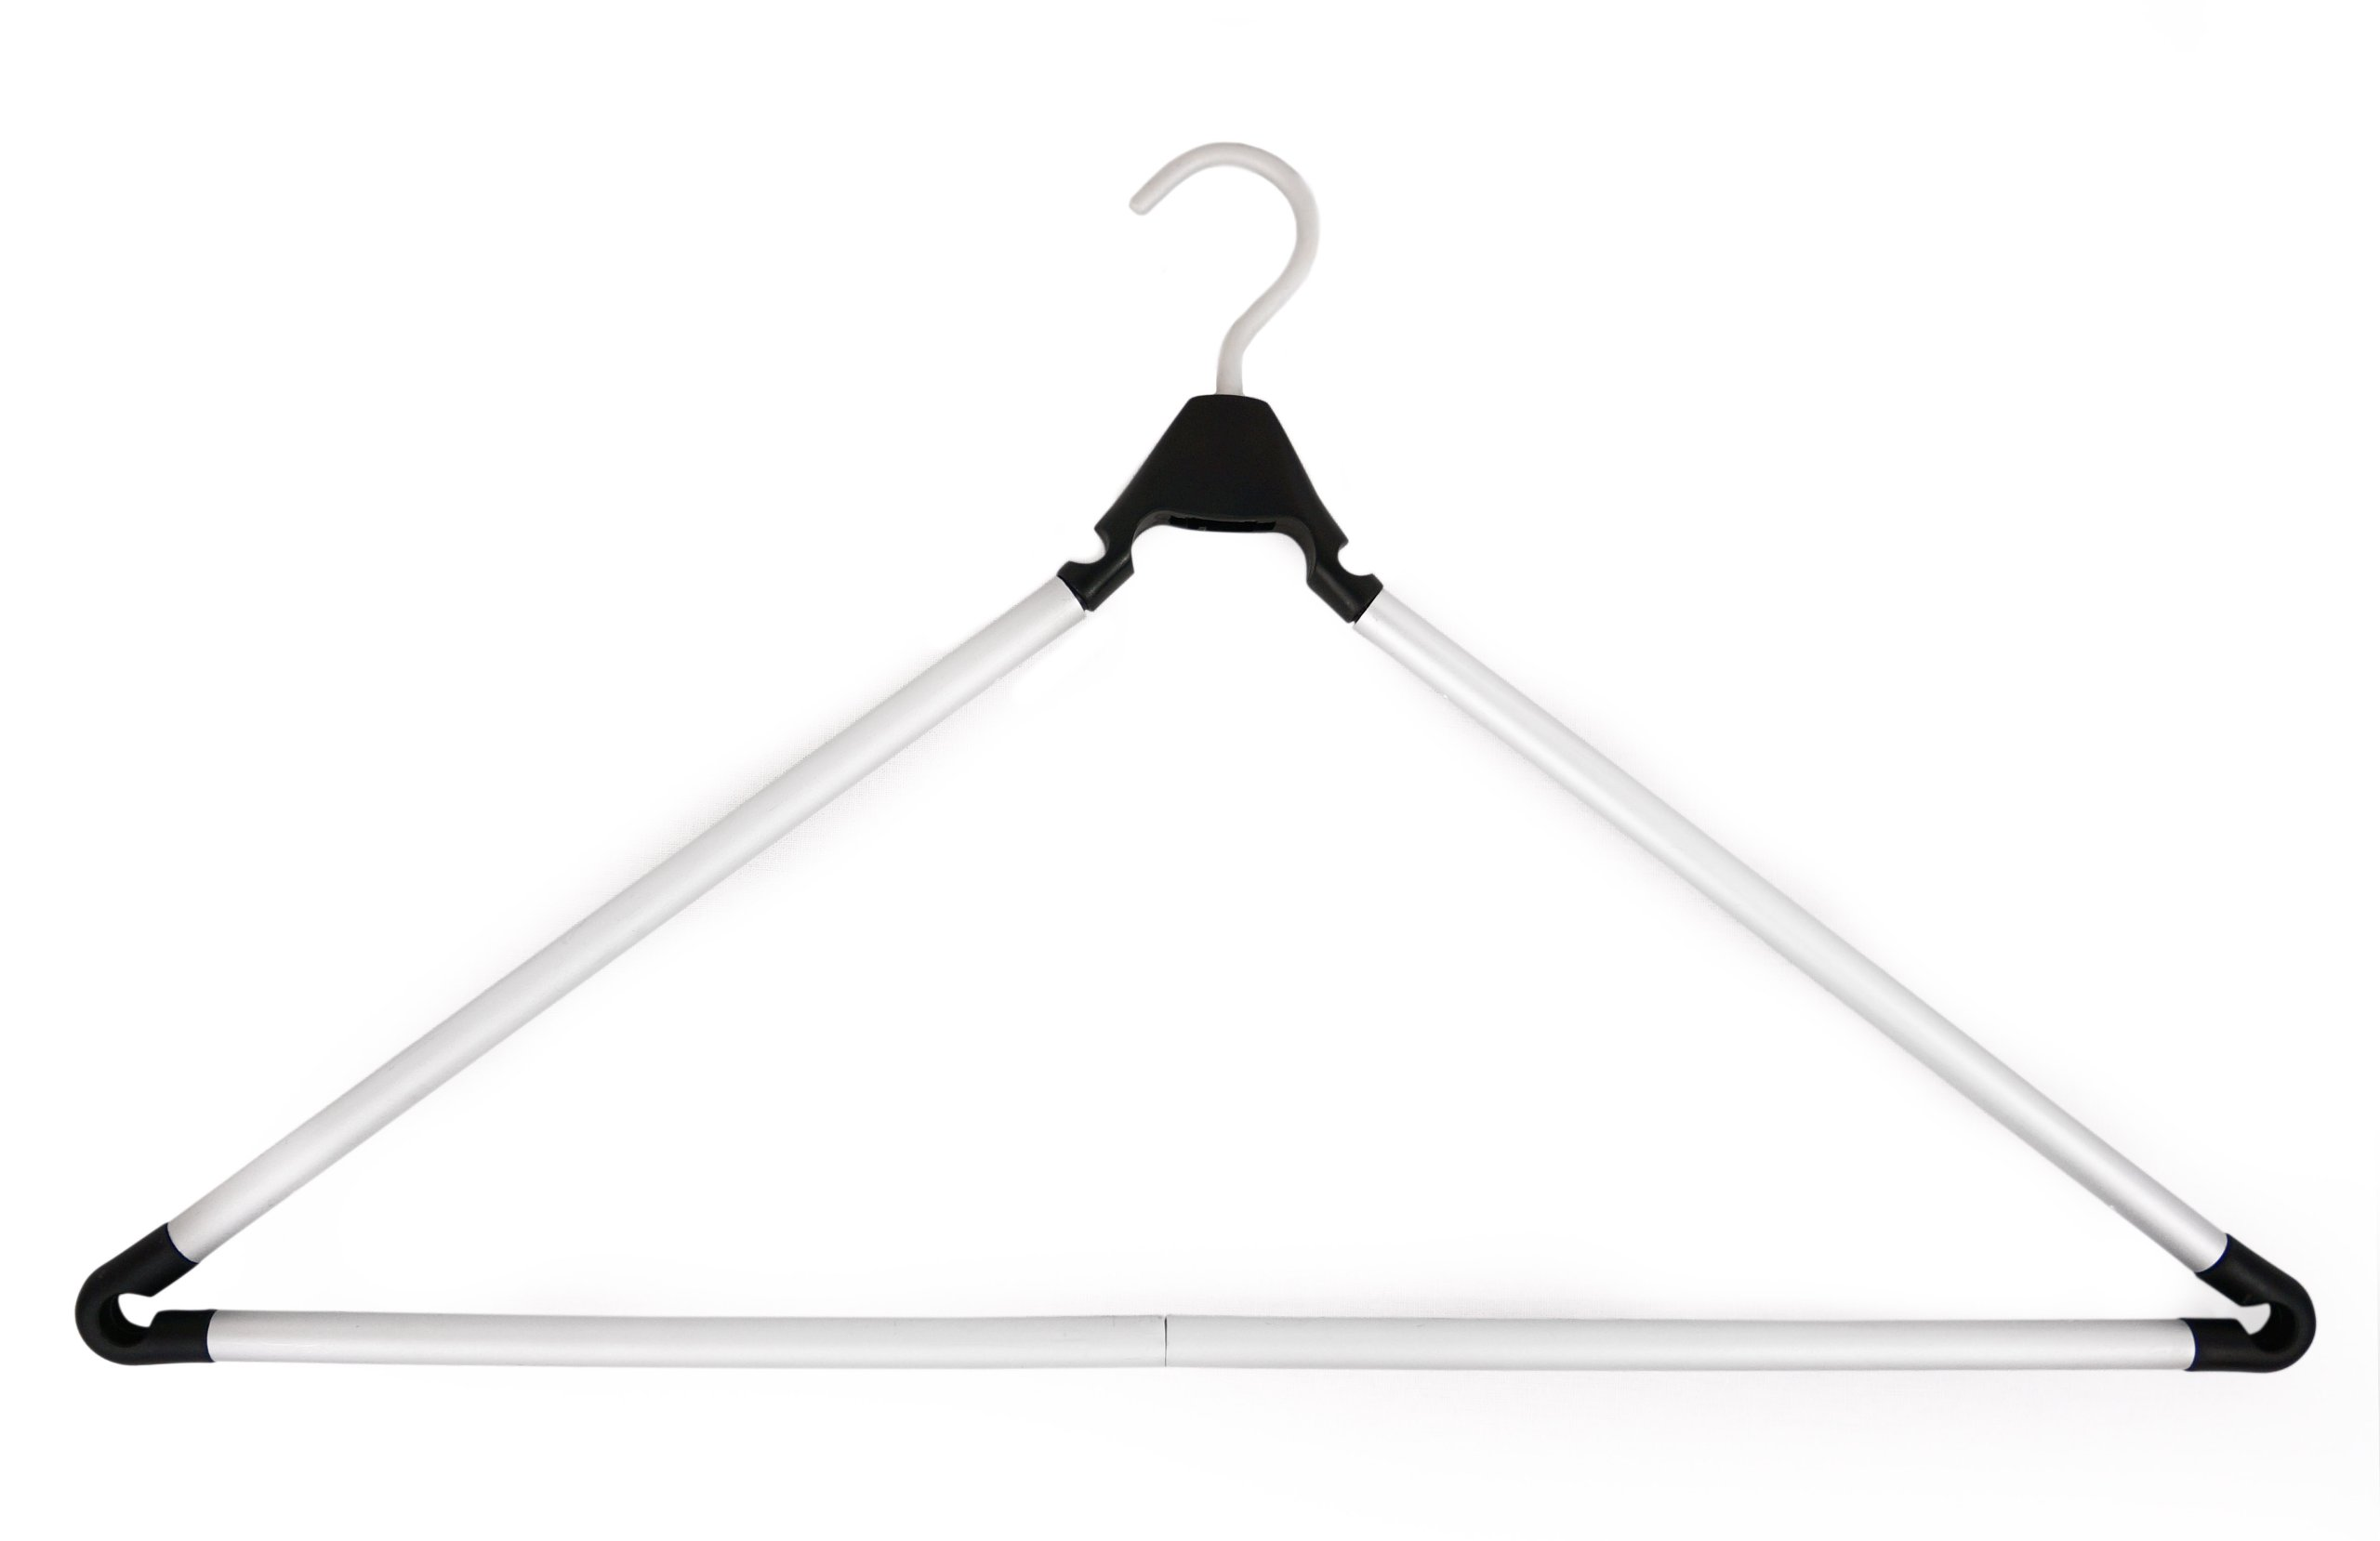 Travel Hanger, Car Hanger, Clothes Hanger- Foldable Hanger, Folding Hanger, Collapsible Hanger, Portable Hanger (Matte Silver & Black) (2)